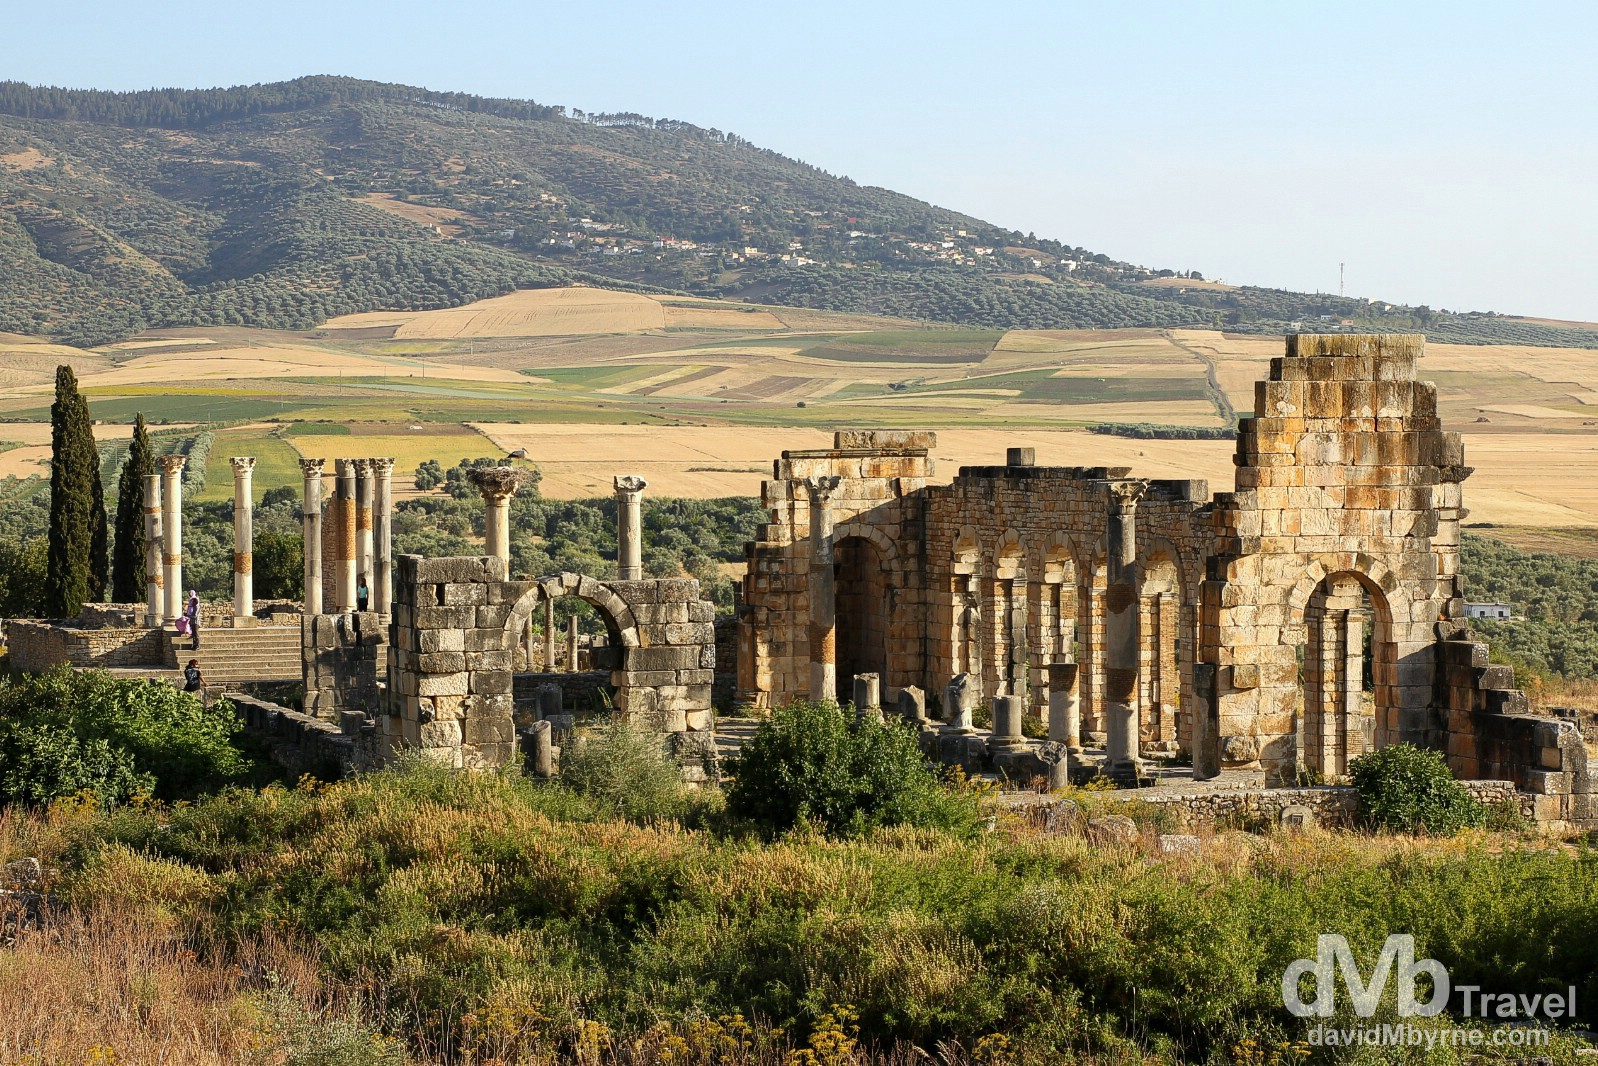 An overview of the Forum, Capital & Basilica of the UNESCO-listed Roman ruins of Volubilis, northern Morocco. May 25th, 2014.